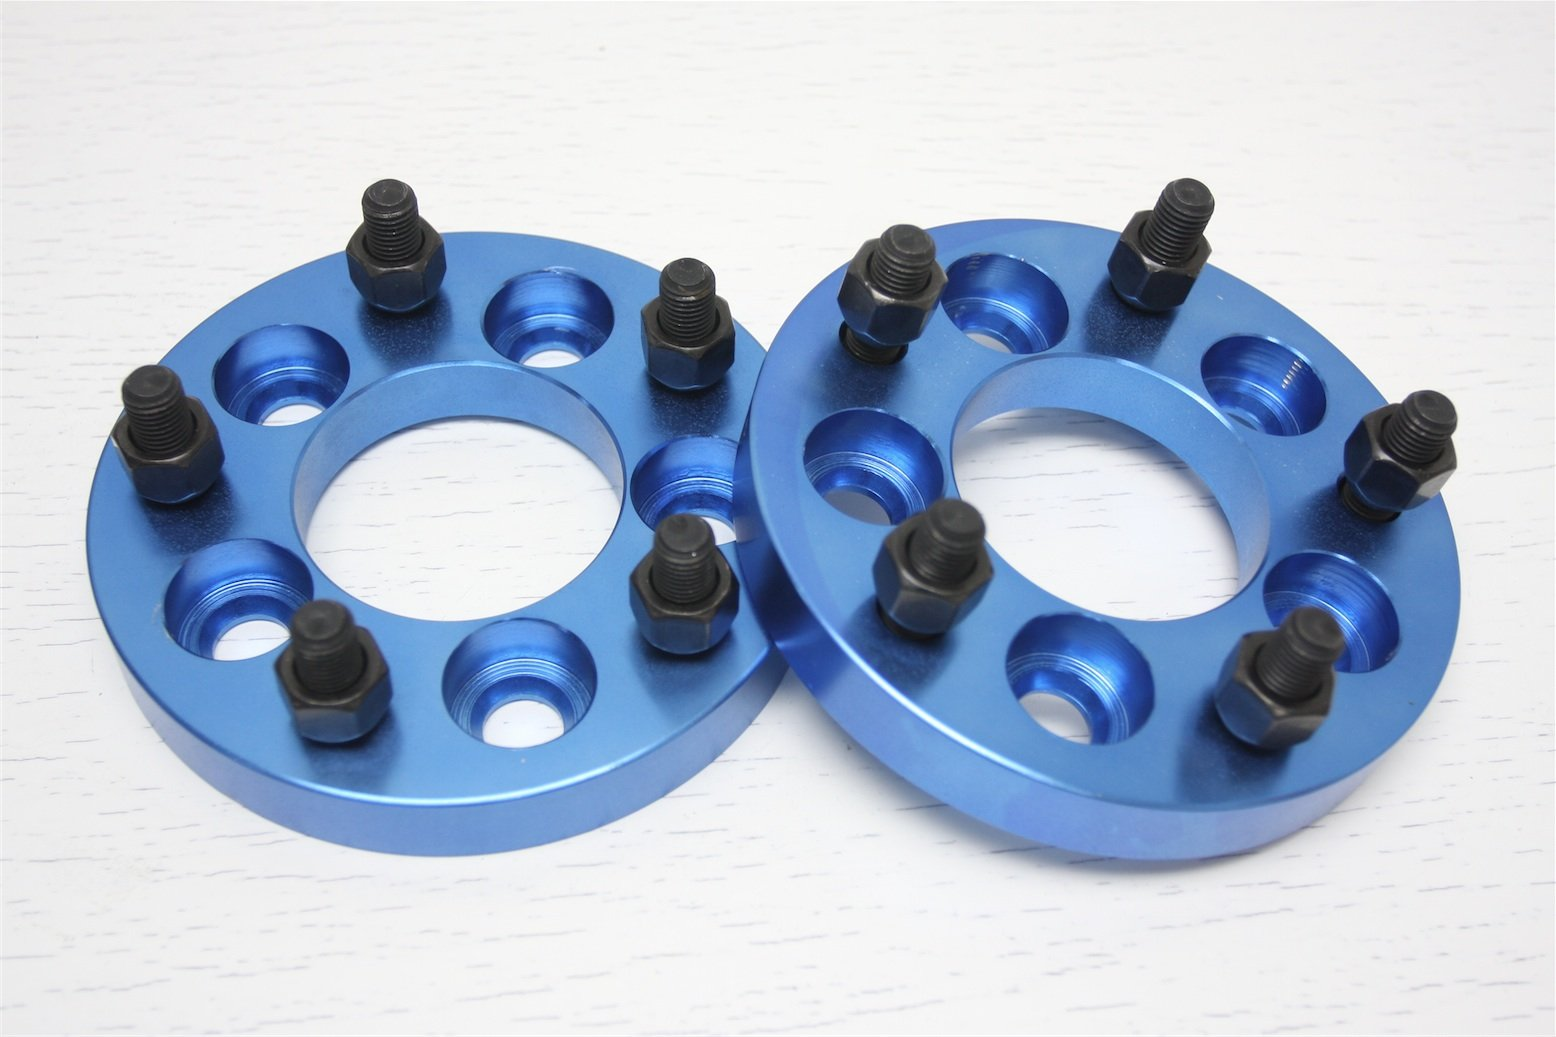 Autobahn88 0.8'' (20mm) Universal Vehicle Wheel Spacer, 5x4.5'' to 5x4.5'' (5x114.3mm to 5x114.3mm), P1.5 M12, Center Bore 2.9'' (74.1mm) - Pack of 2